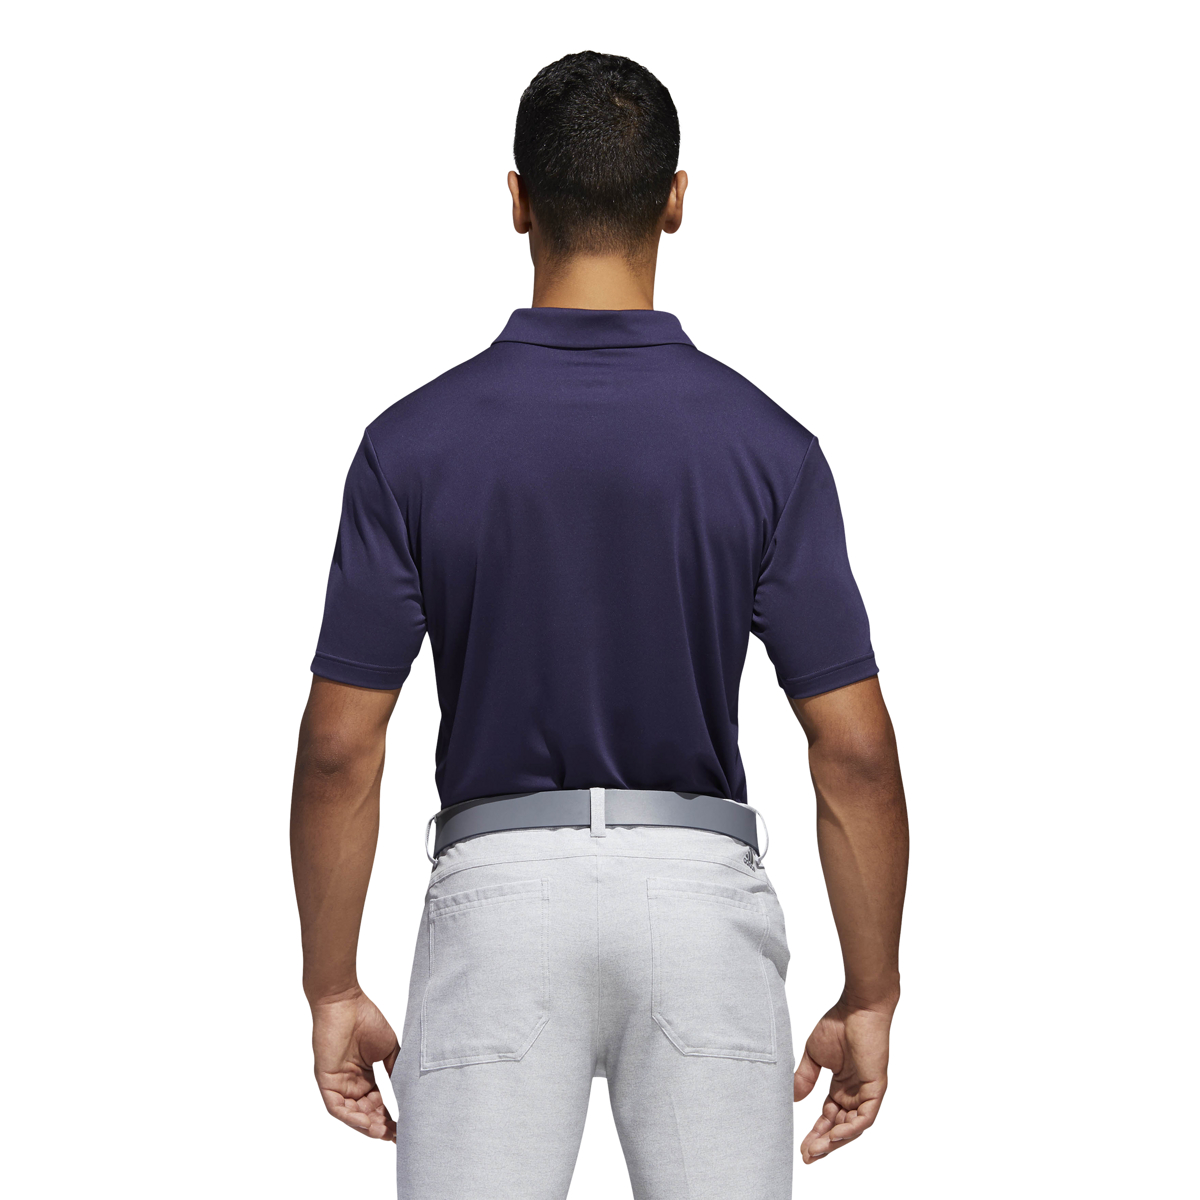 Adidas-Golf-Climacool-Chest-Print-Men-039-s-Polo-Shirt-Pick-Size-amp-Color thumbnail 8